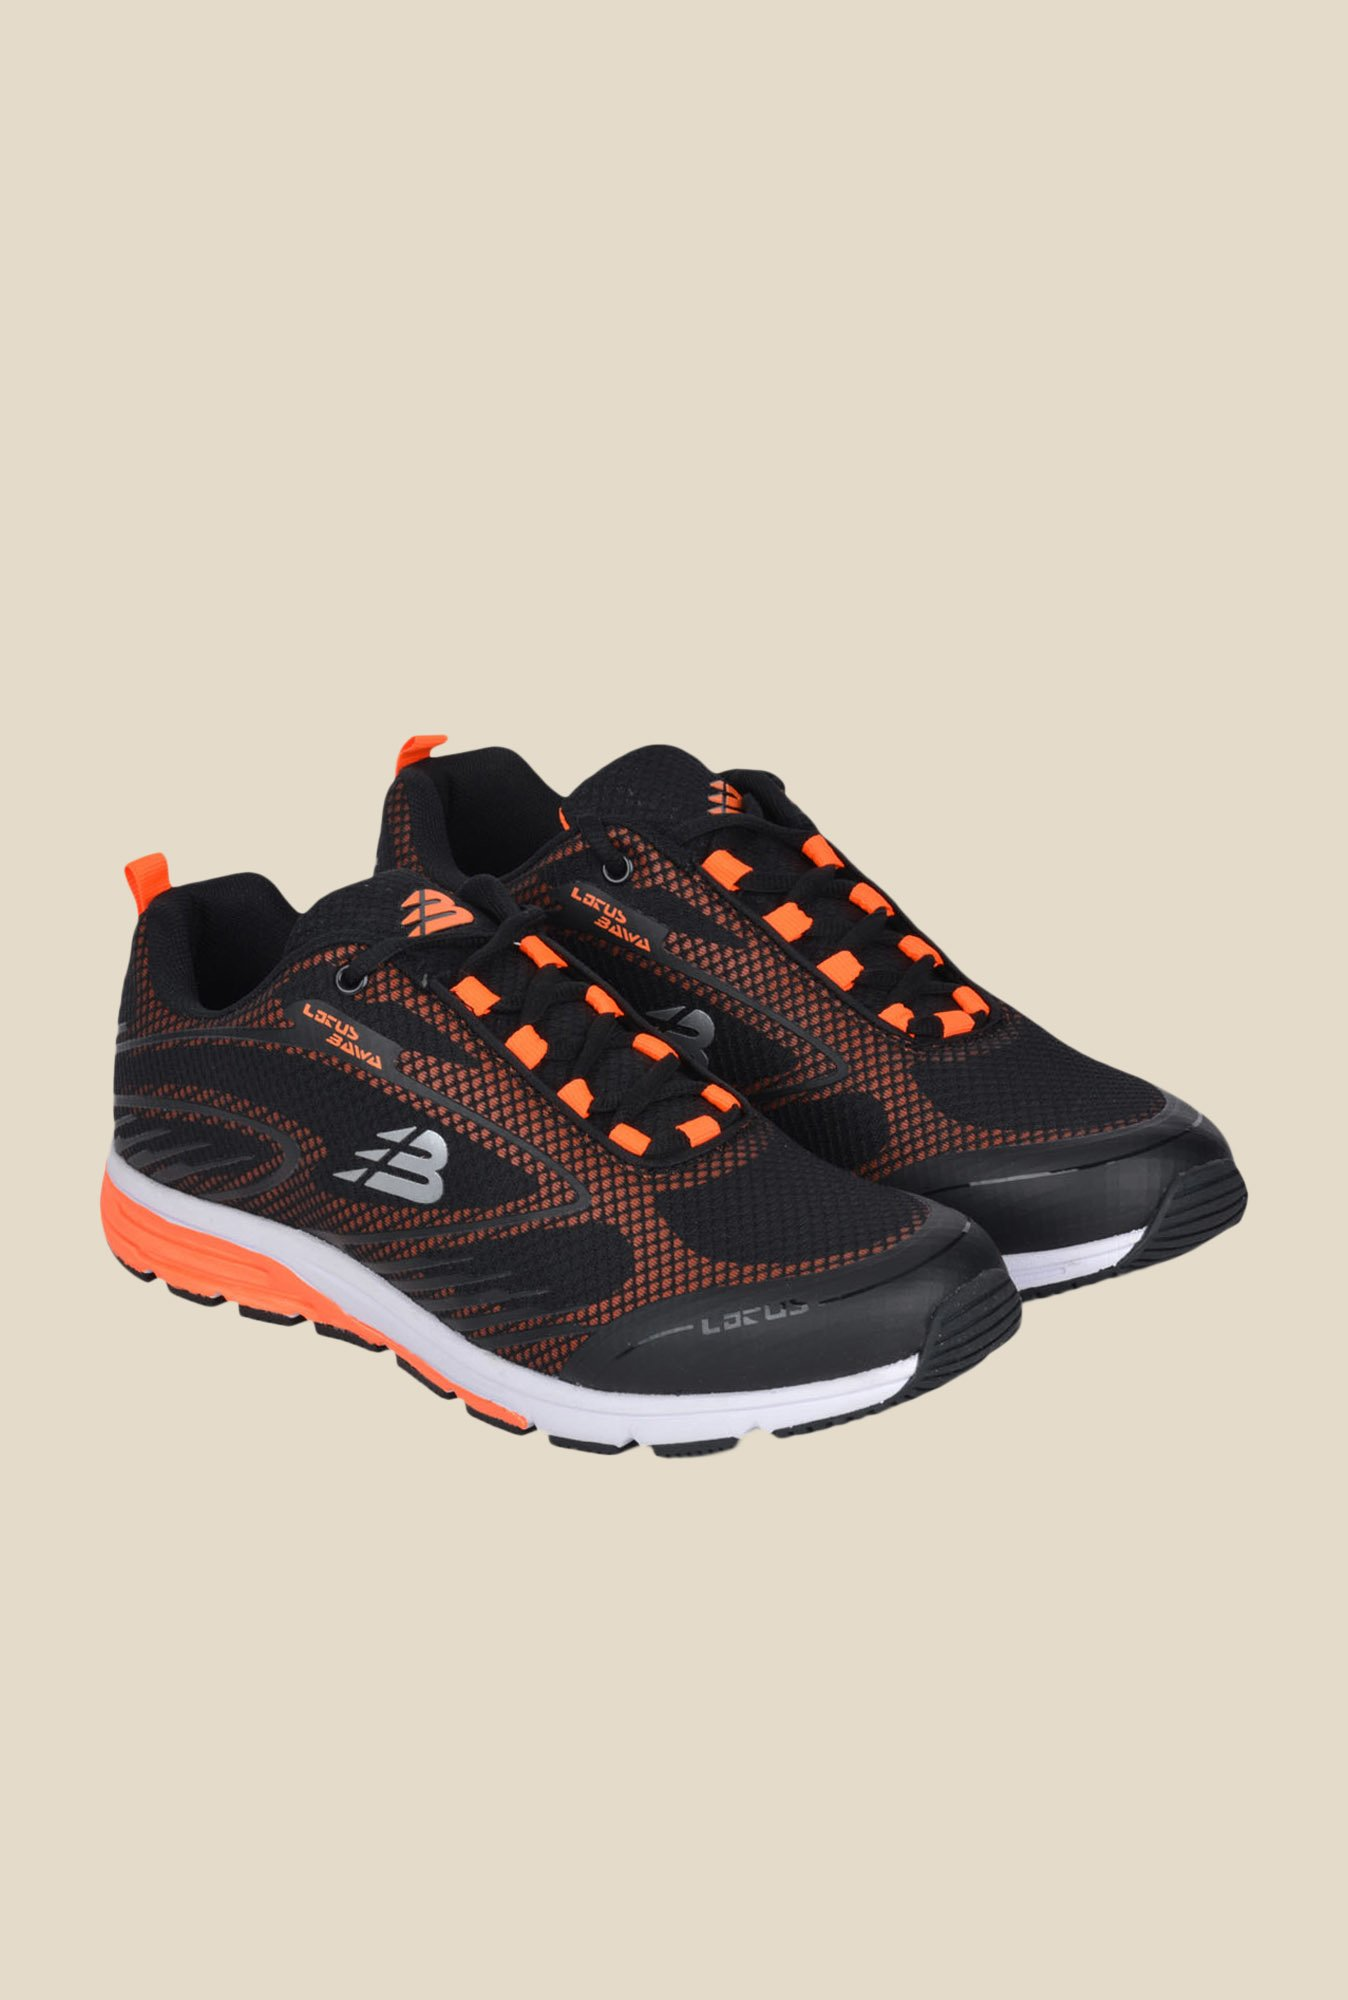 Lotus Bawa Black & Orange Running Shoes